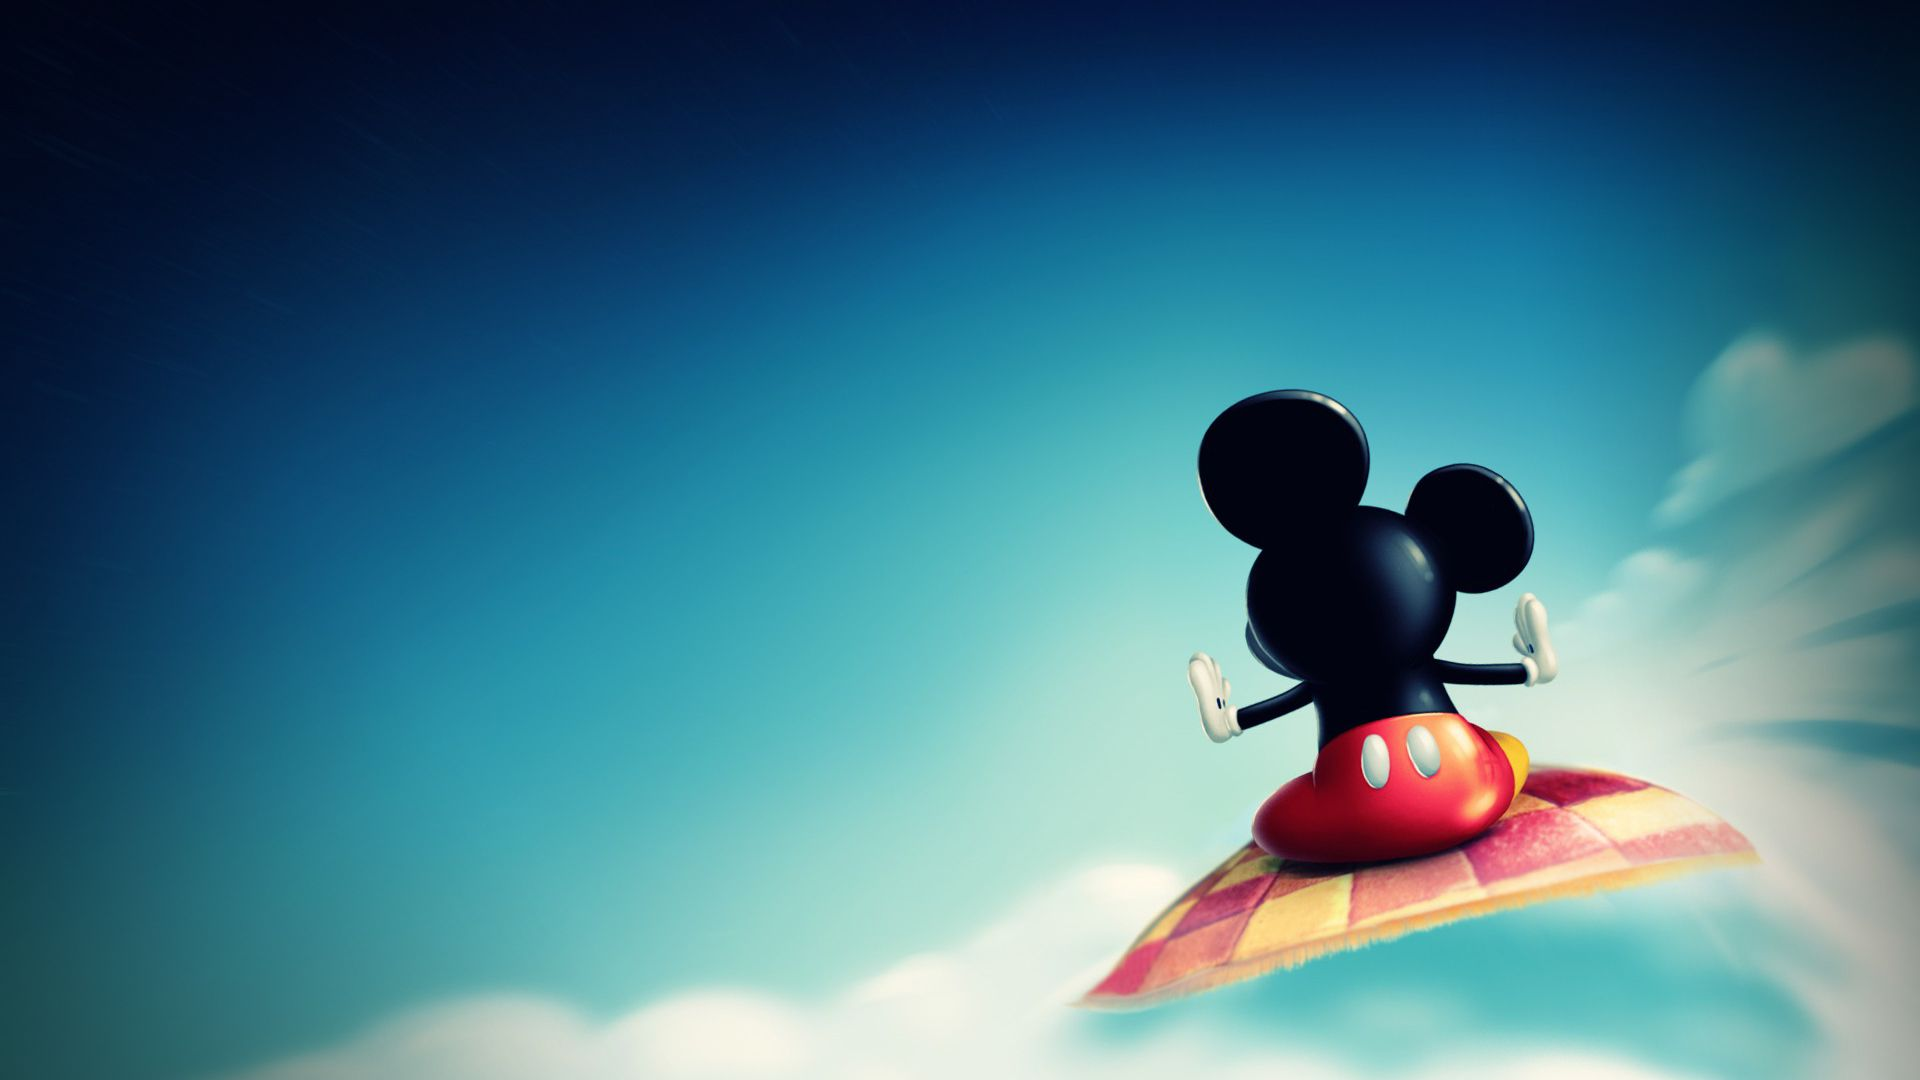 mickey mouse hd wallpapers | hd wallpaper | disney in 2018